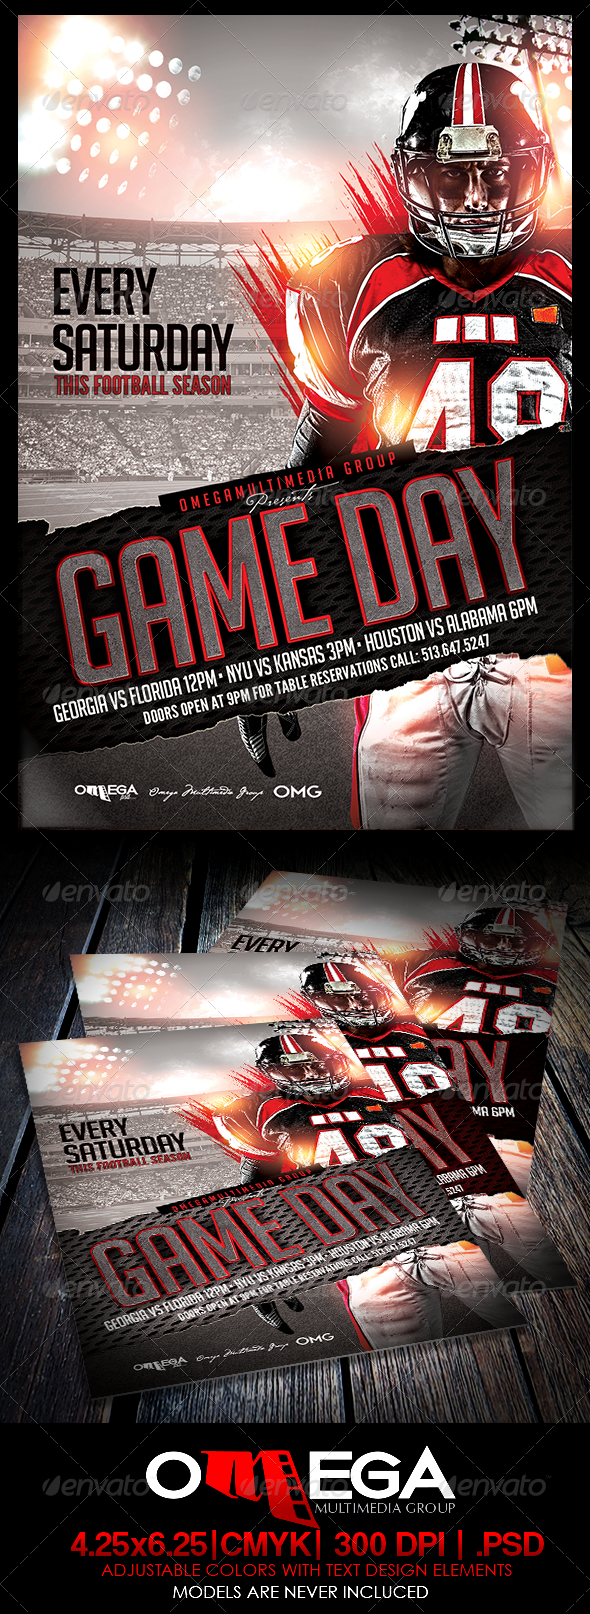 Game Day Print templates, Event flyer templates, Flyer